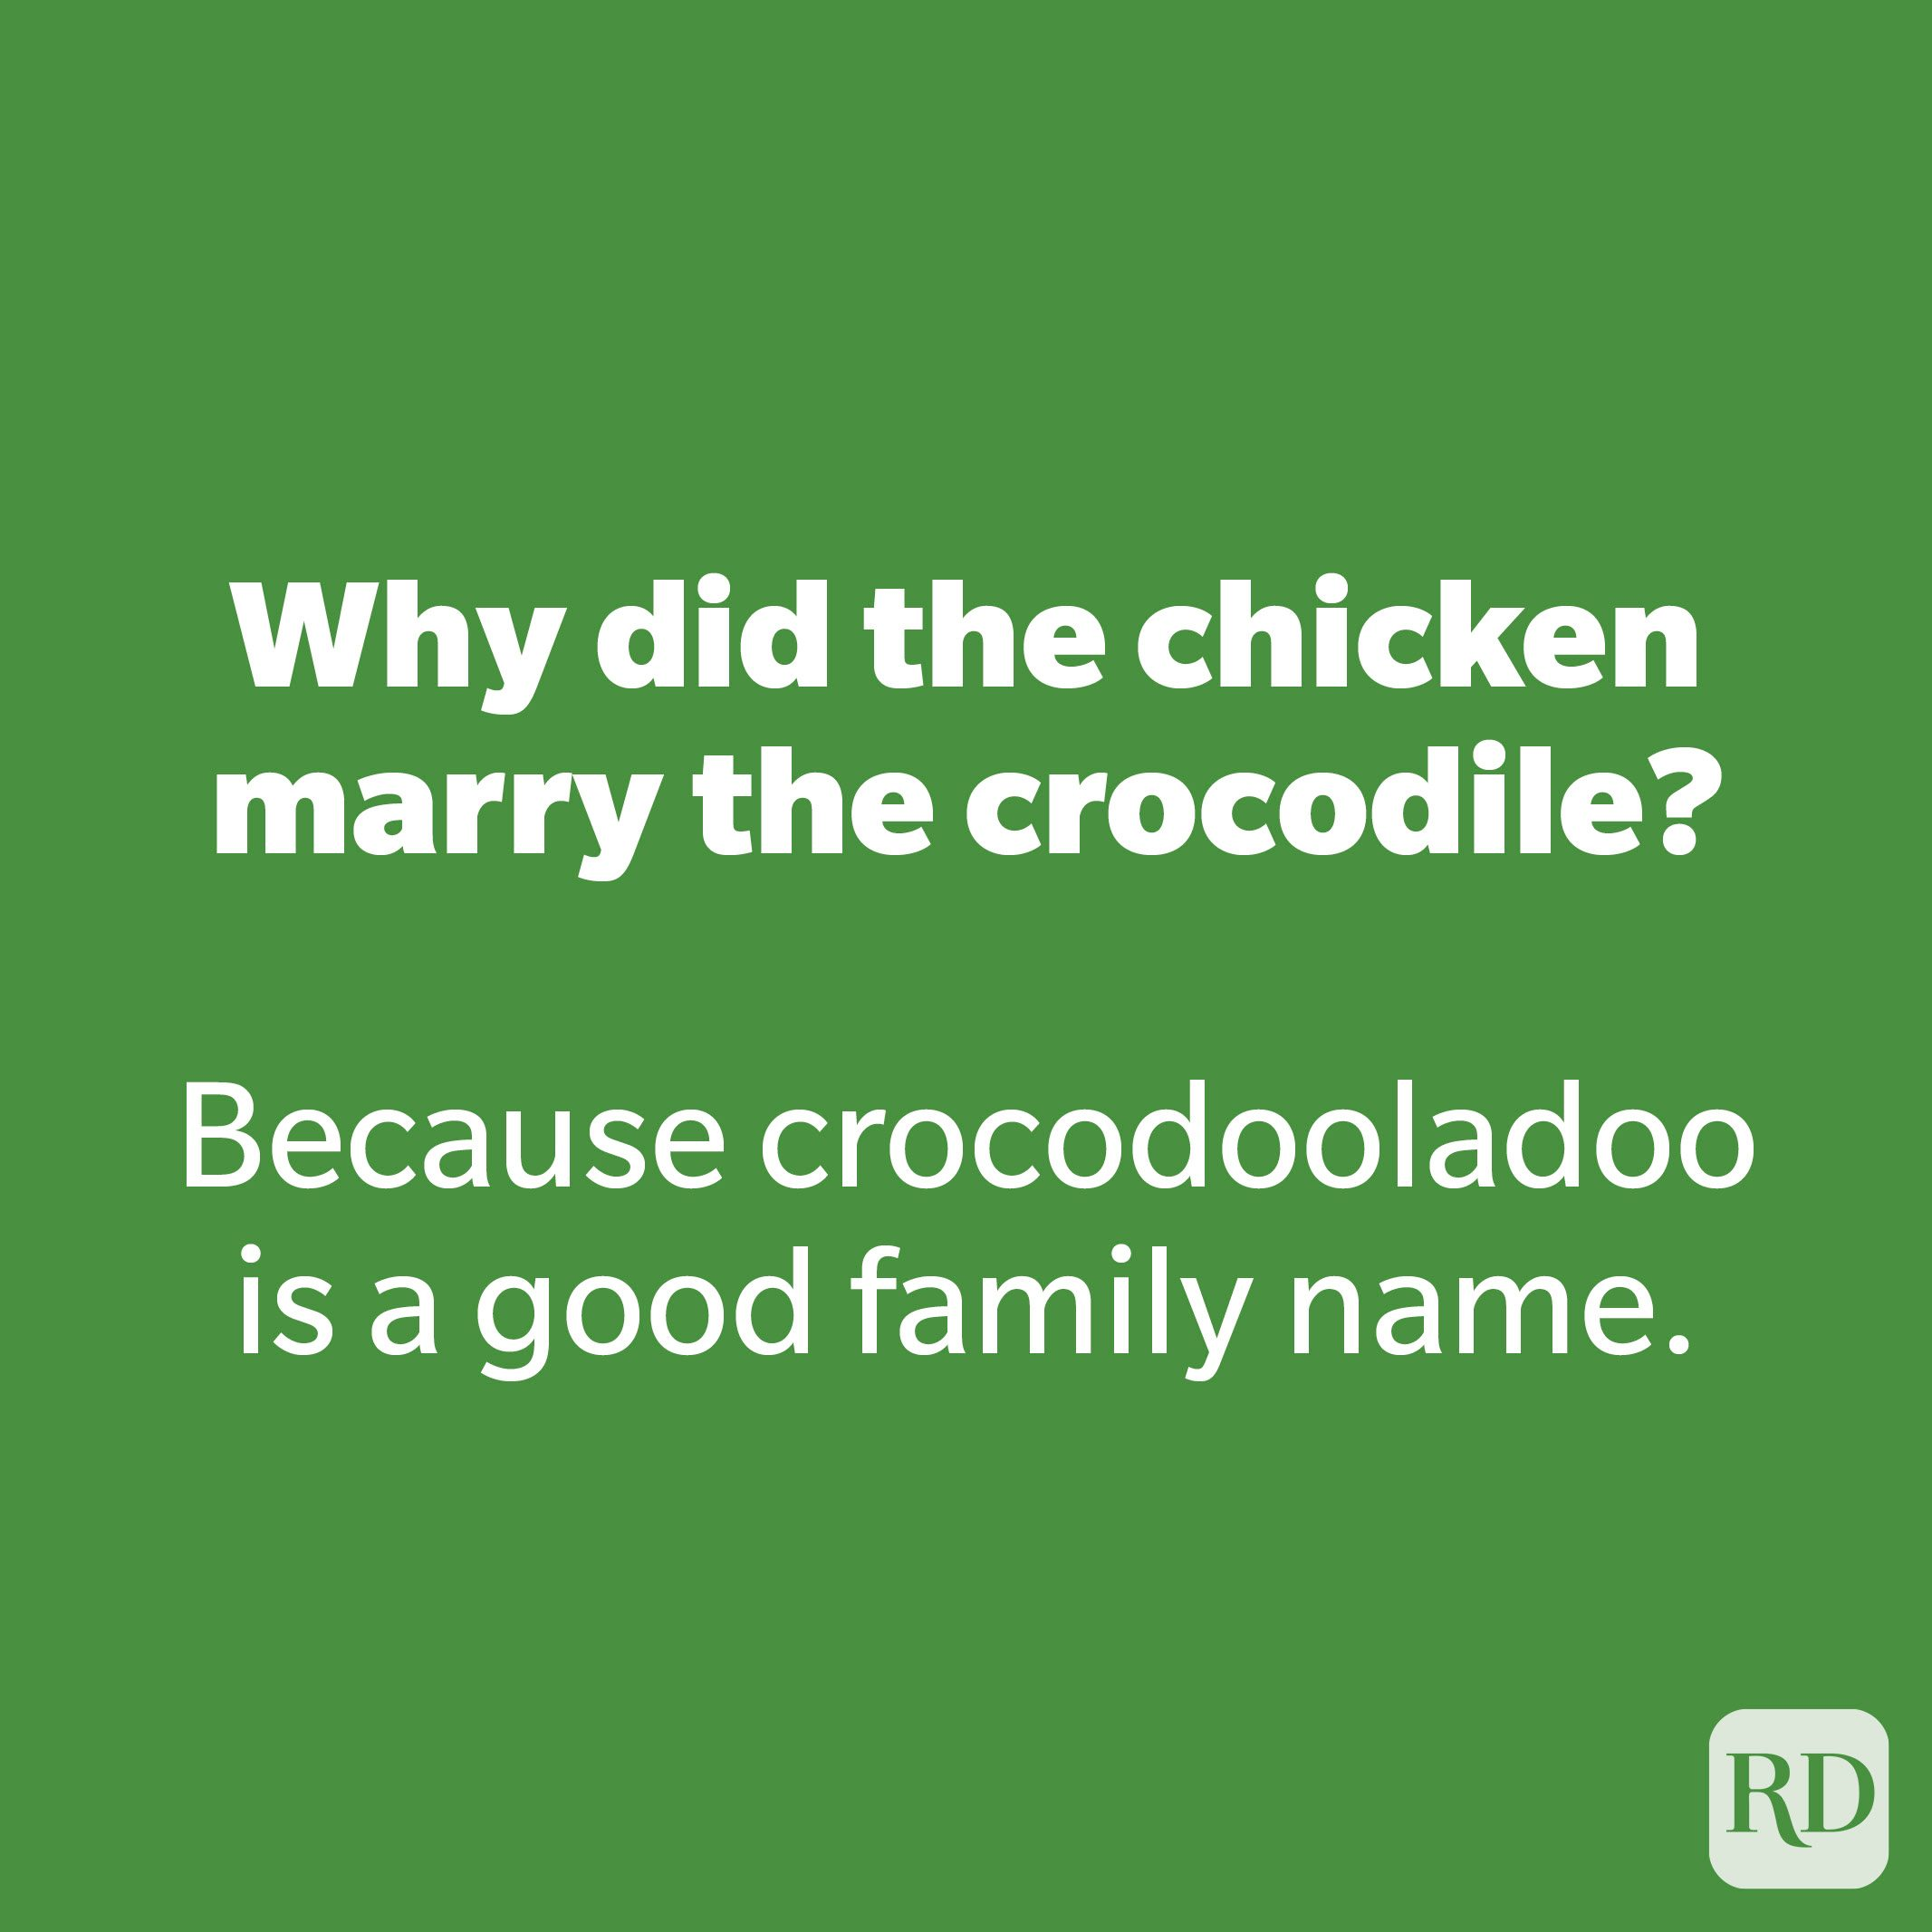 Why did the chicken marry the crocodile?